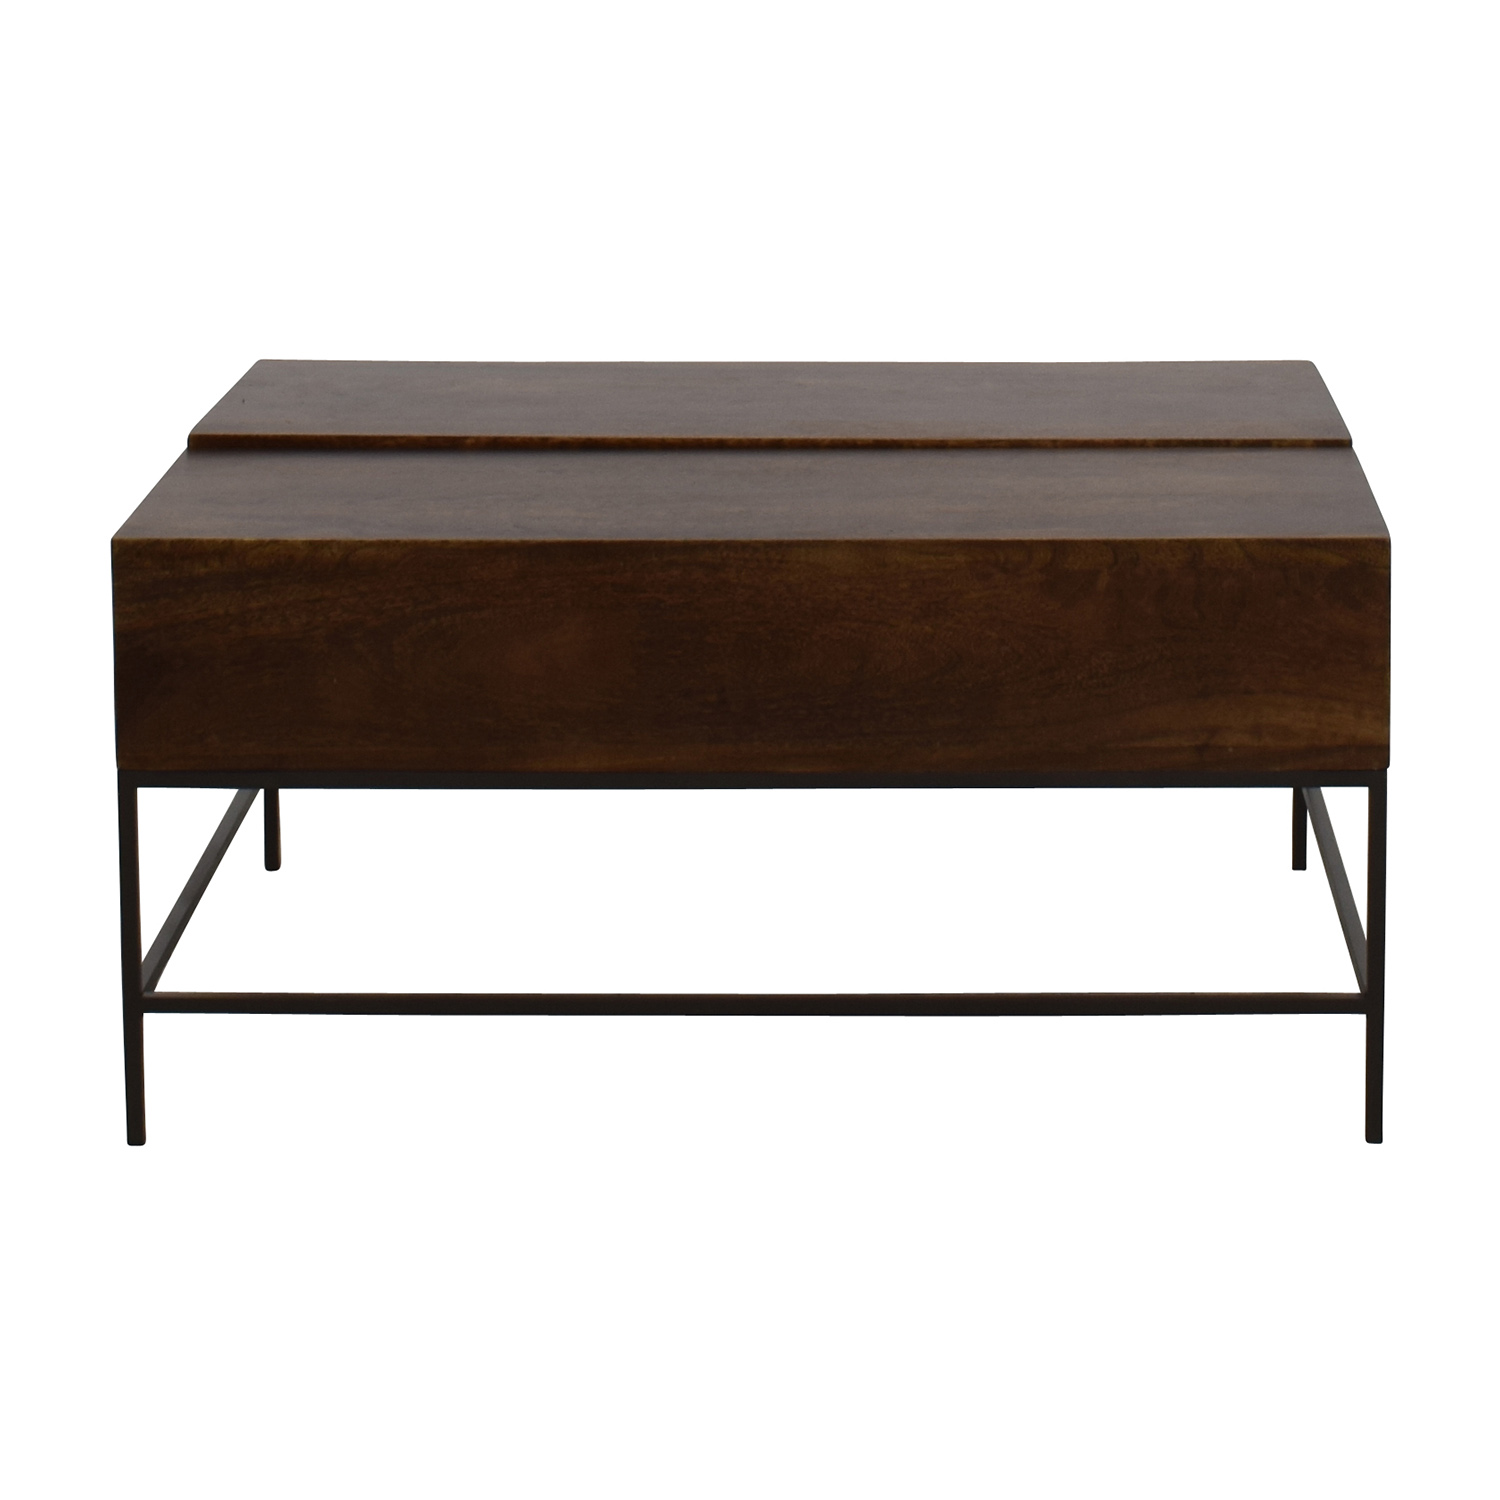 46% OFF Glass Top with Wood Base Coffee Table Tables